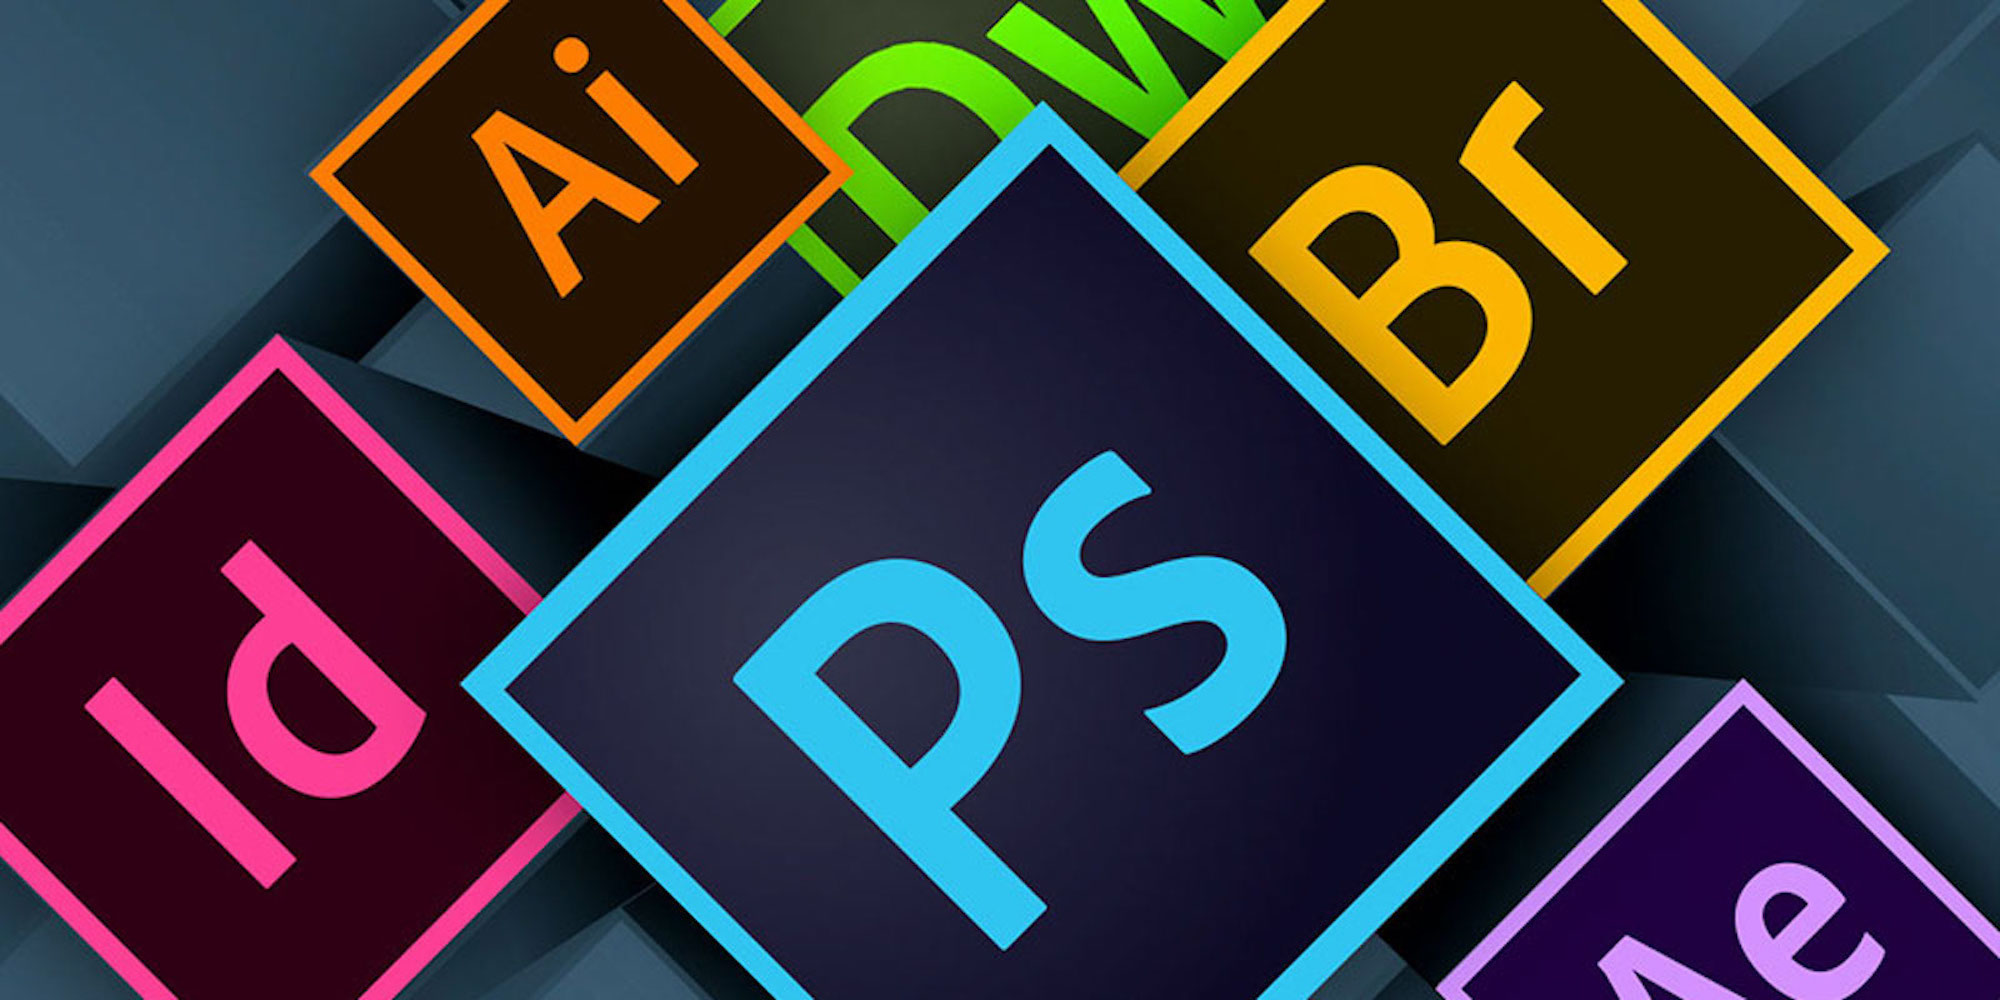 Get a year of Adobe's Creative Cloud subscription at $40/mo or $480/year (20% off)